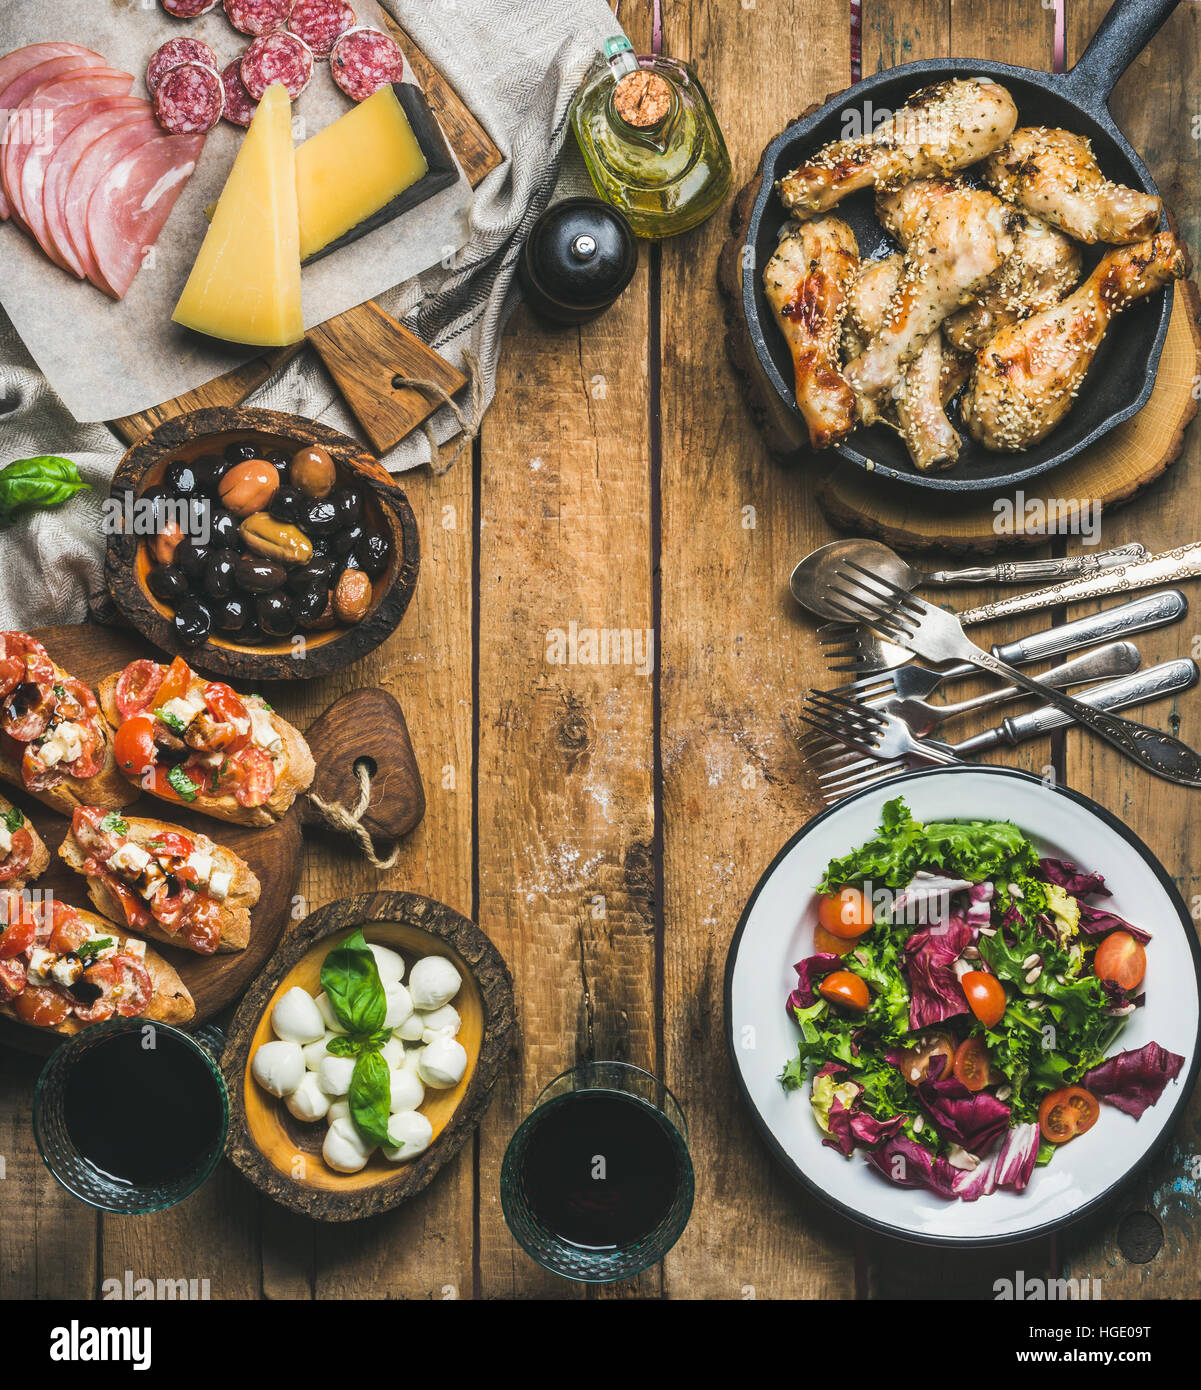 Rustic table set with meat, cheese, snacks, wine, copy space - Stock Image